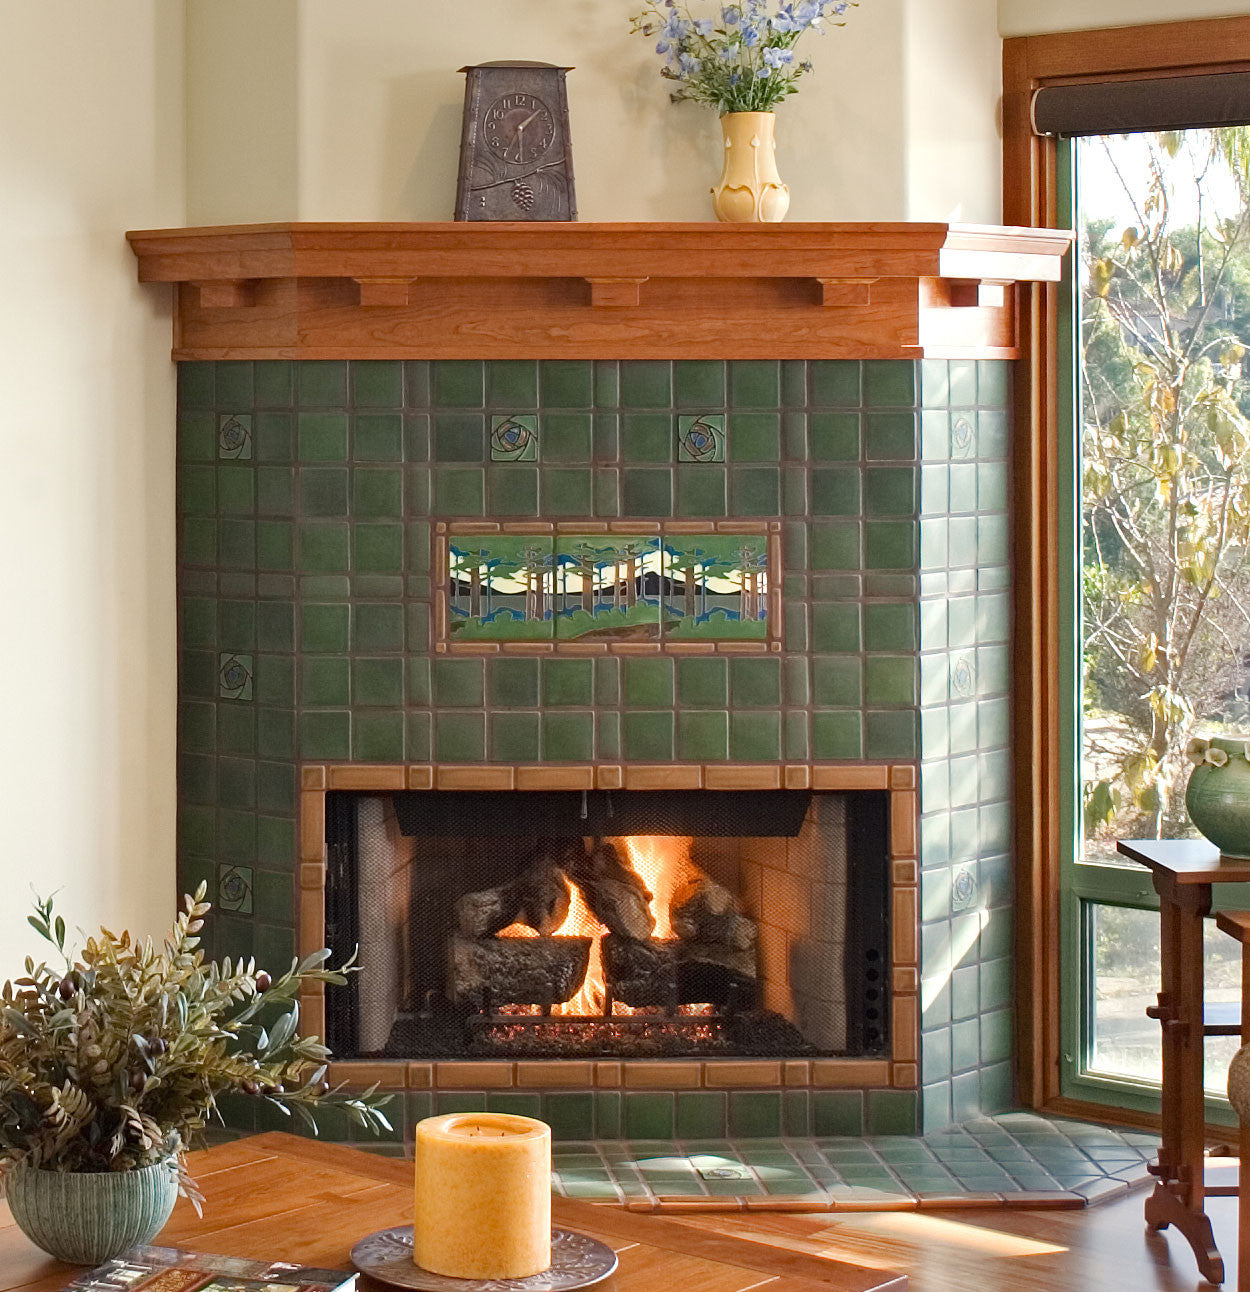 Spotlight on pine landscape motawi tileworks surrounded by motawis signature glaze lee green and sprinkled with decorative accent tiles this fireplace owns the room doublecrazyfo Image collections